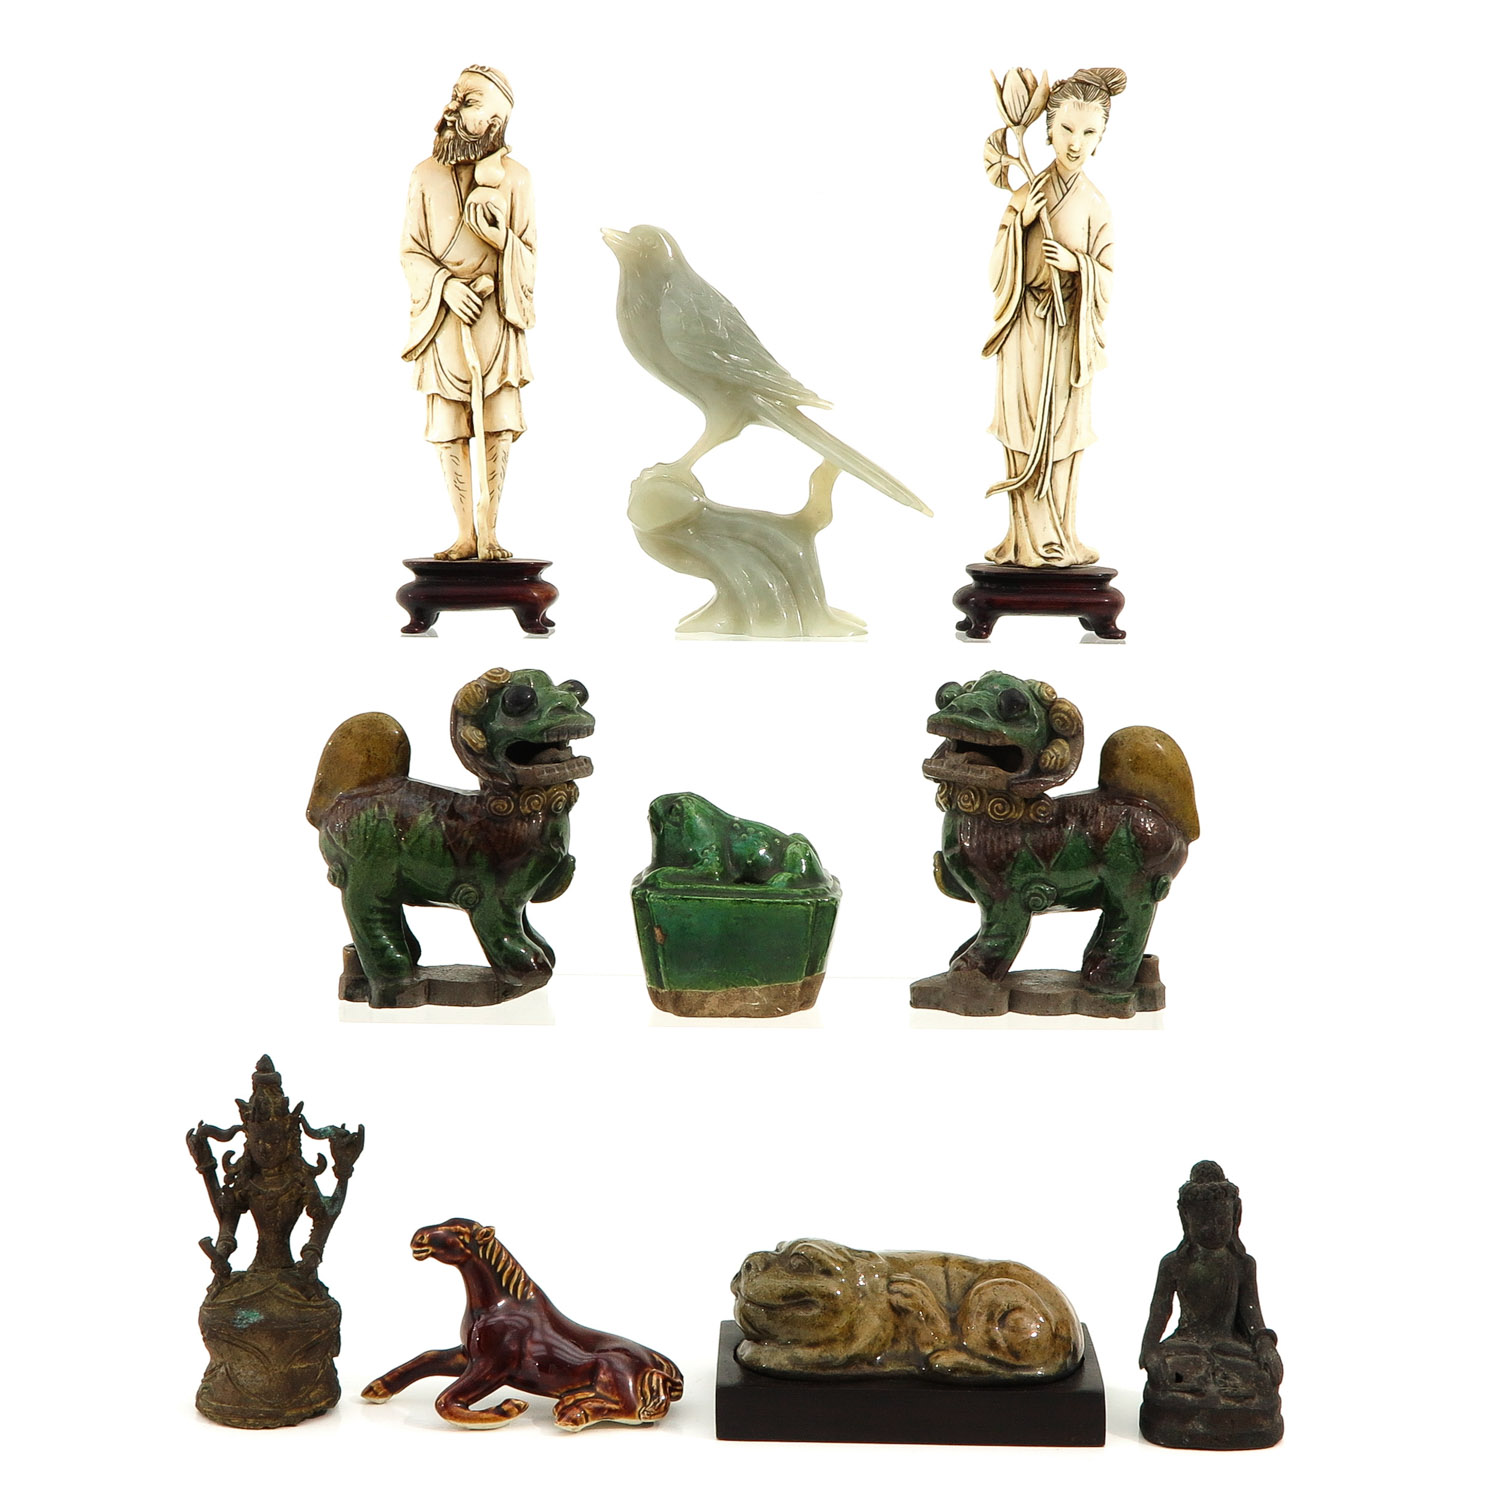 A Diverse Collection of Sculptures